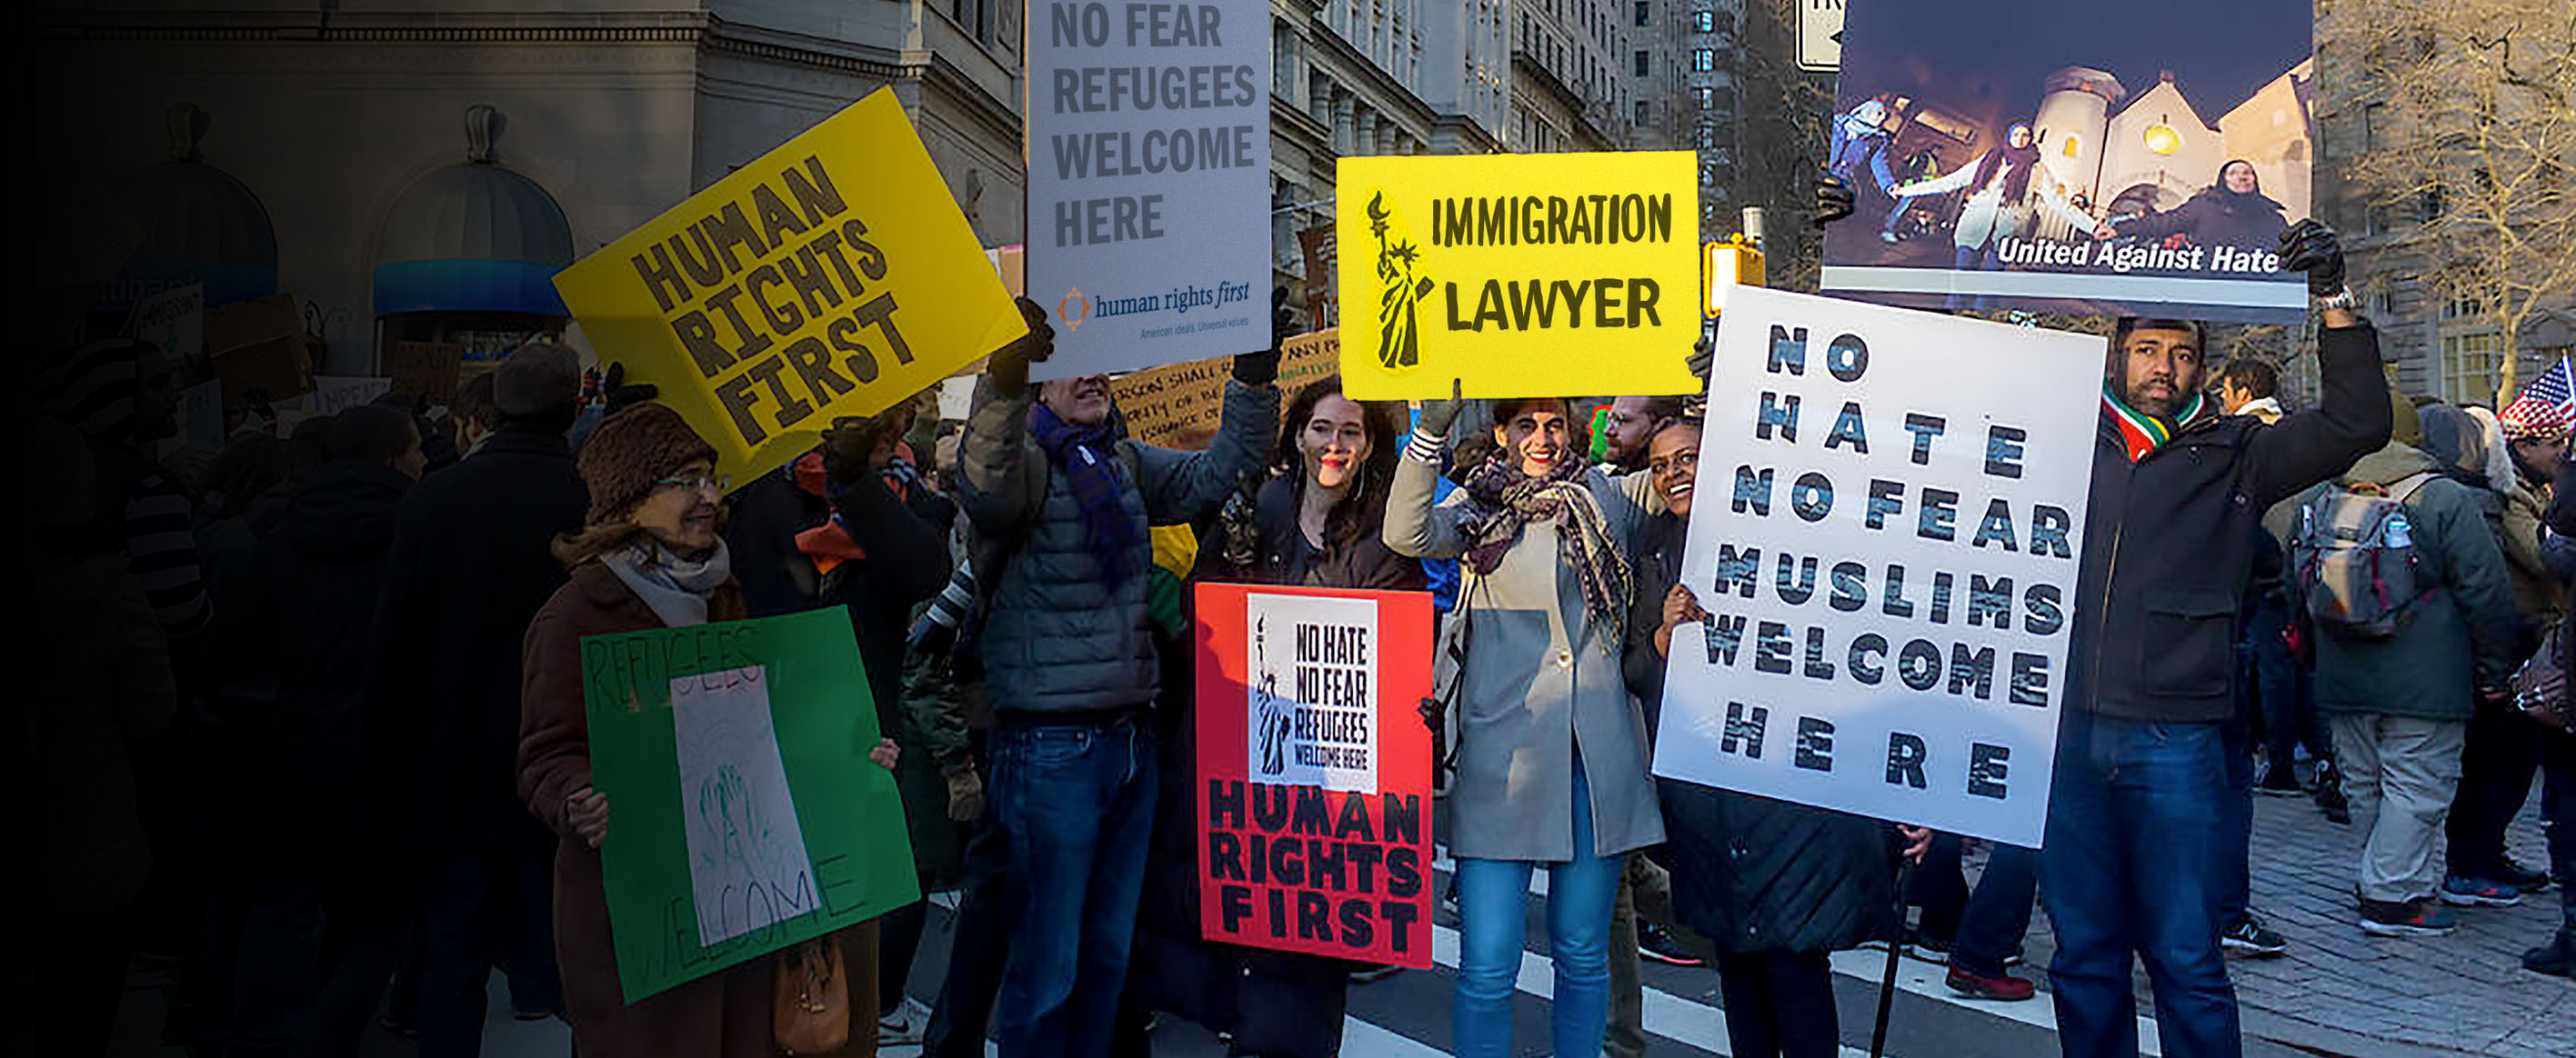 Human Rights First attorneys and staff protest Trump's ban on Muslim refugees